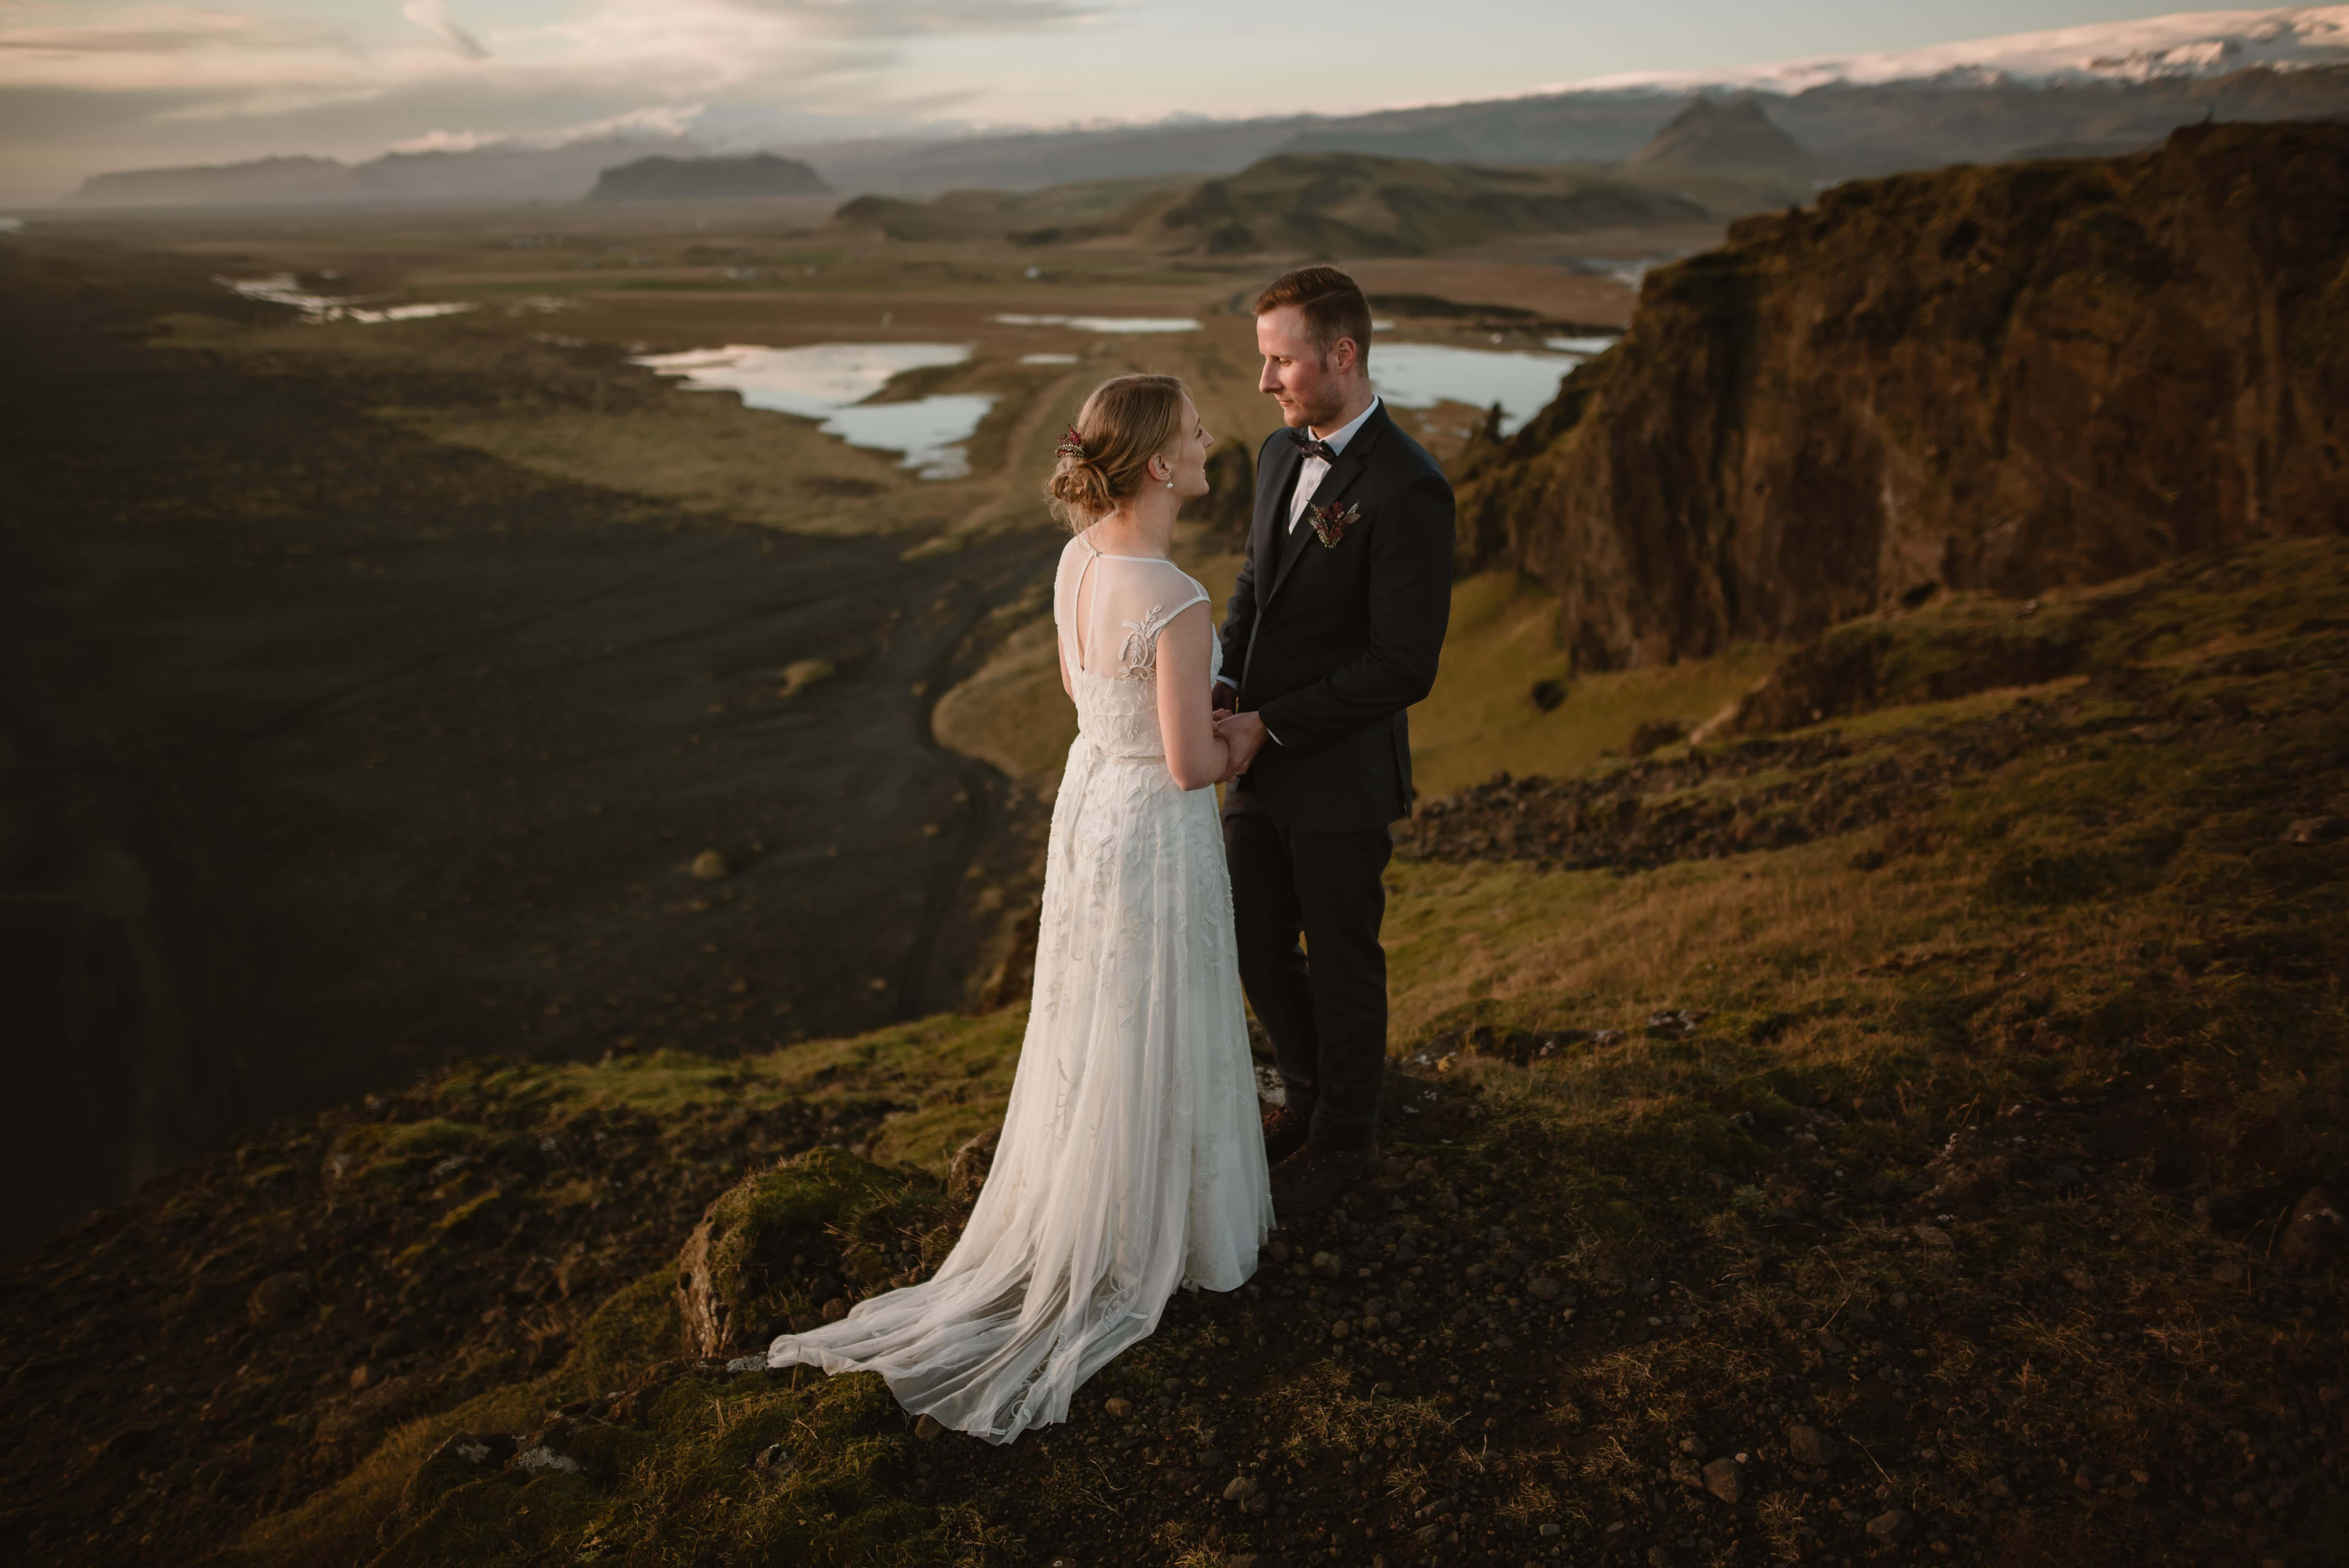 An eloping couple is standing at an incredible viewpoint in Iceland, sharing their vows, face to face, and holding hands. They are overlooking snowy mountains, lakes, and a black beach. When people ask what is eloping, this is the perfect picture.